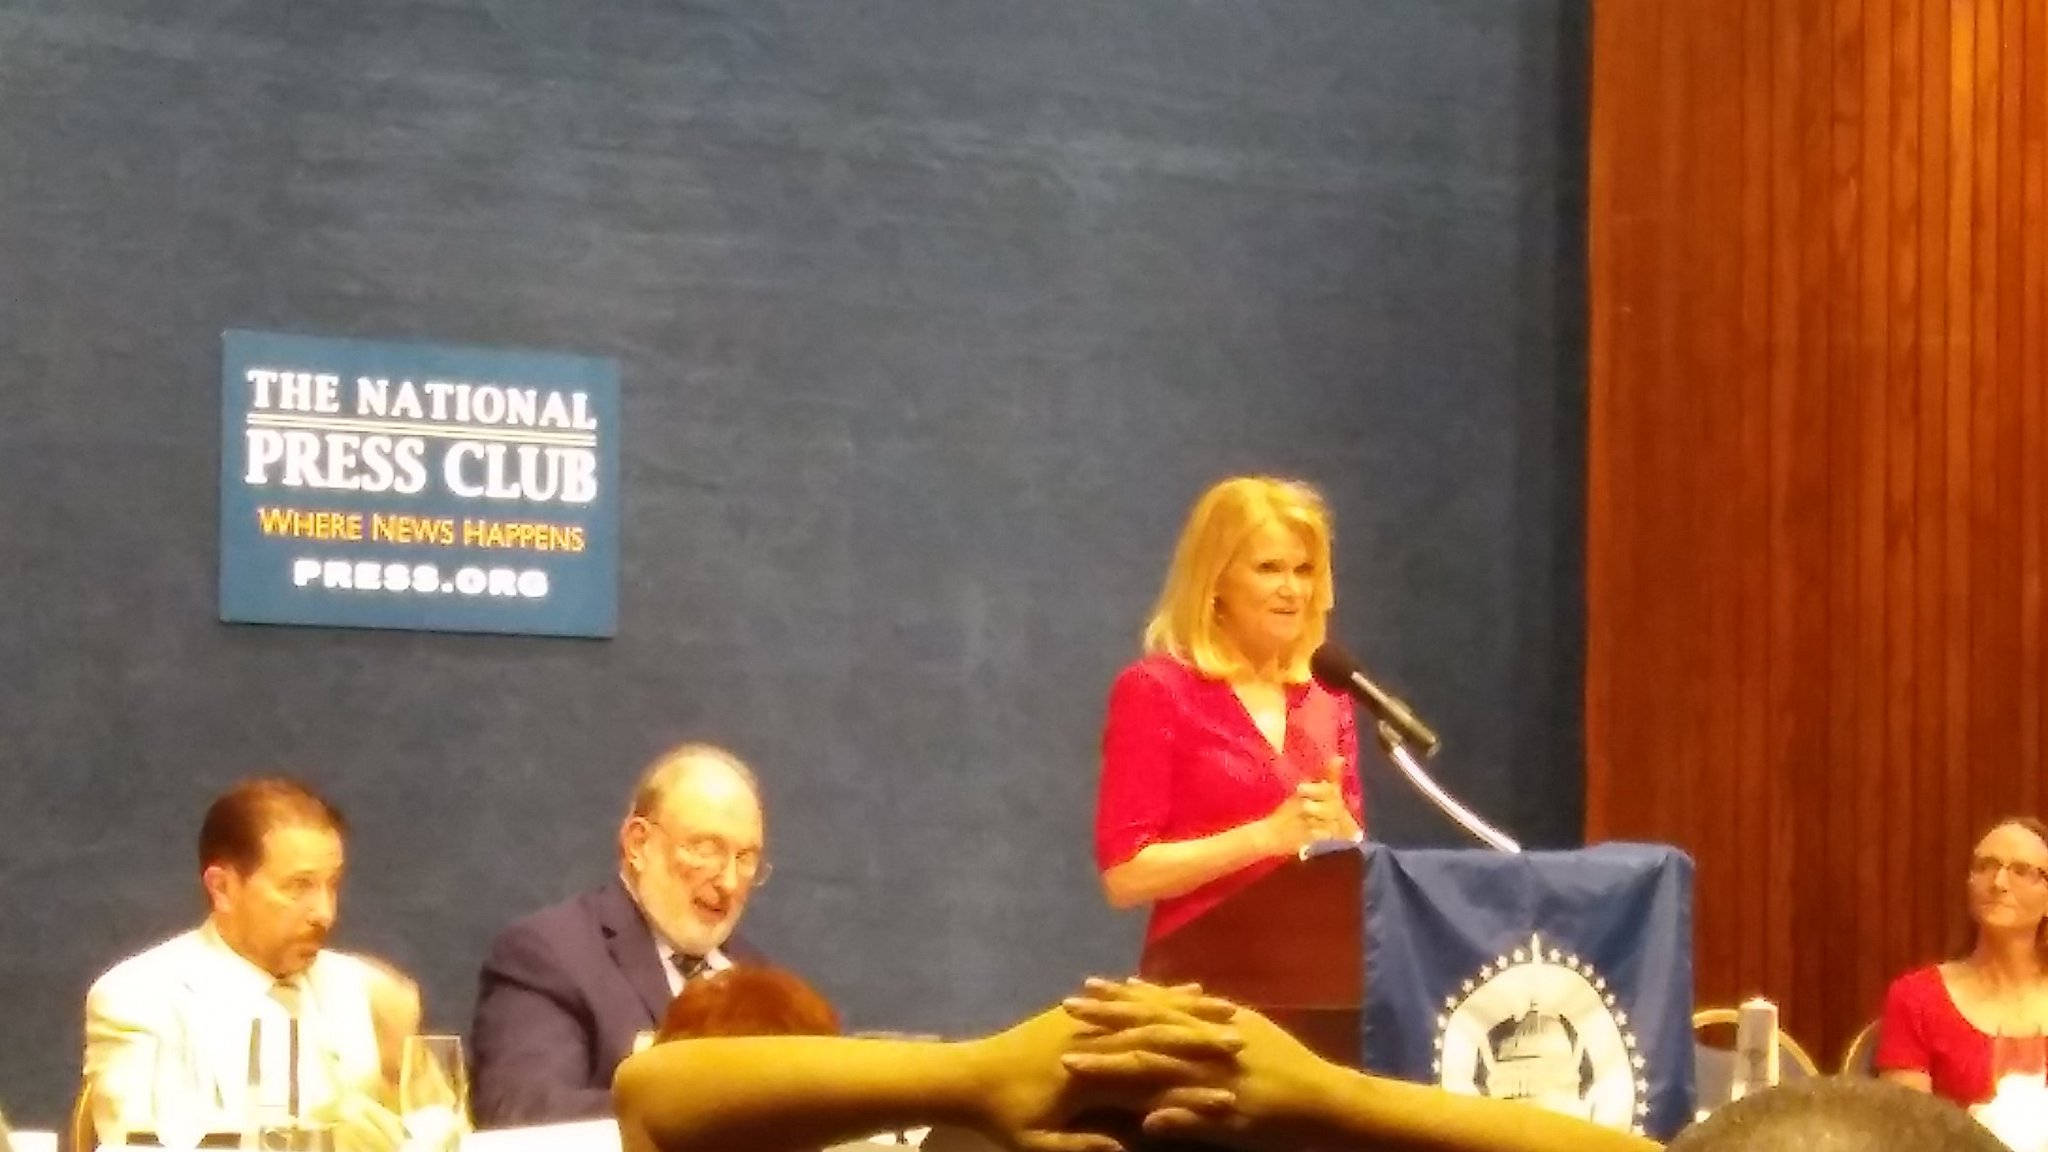 Our final 2017 Hall of Fame inductee: @MarthaRaddatz, @abc Chief Global Affairs Correspondent #dcspj17 https://t.co/ylaovRegYu